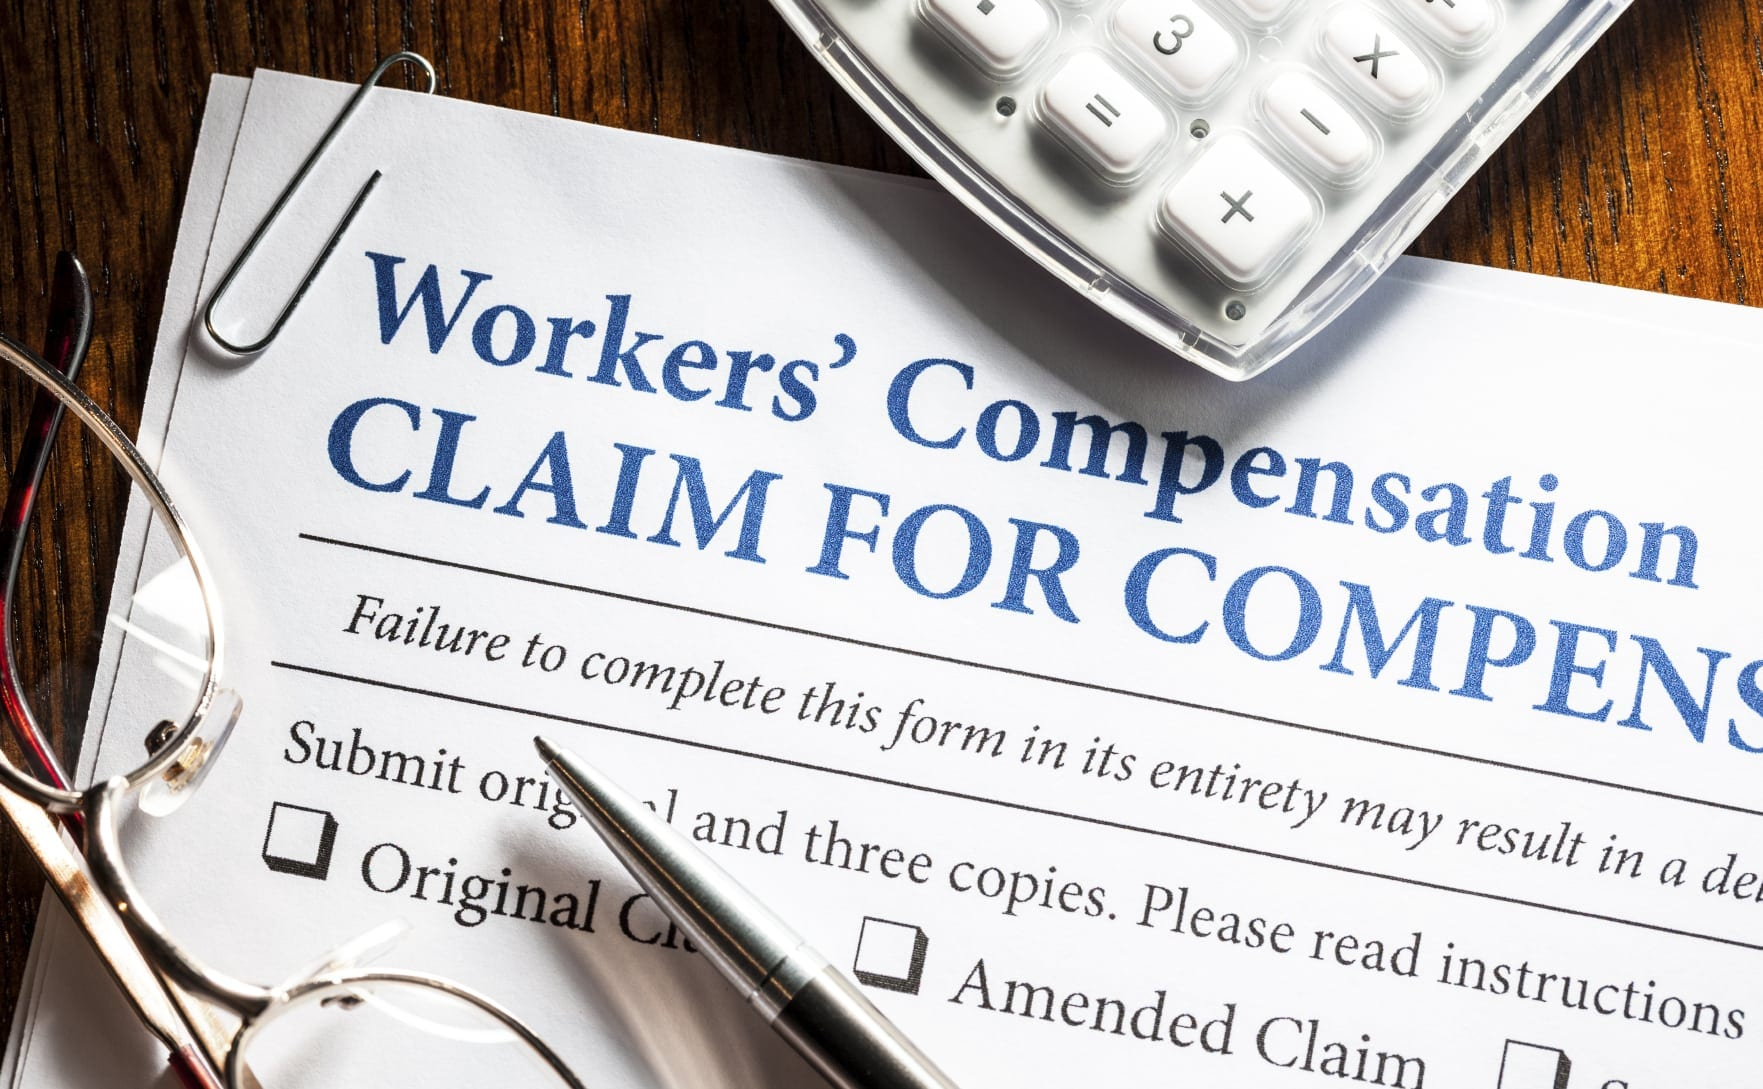 Blank Workers' Compensation Form Stock Photo